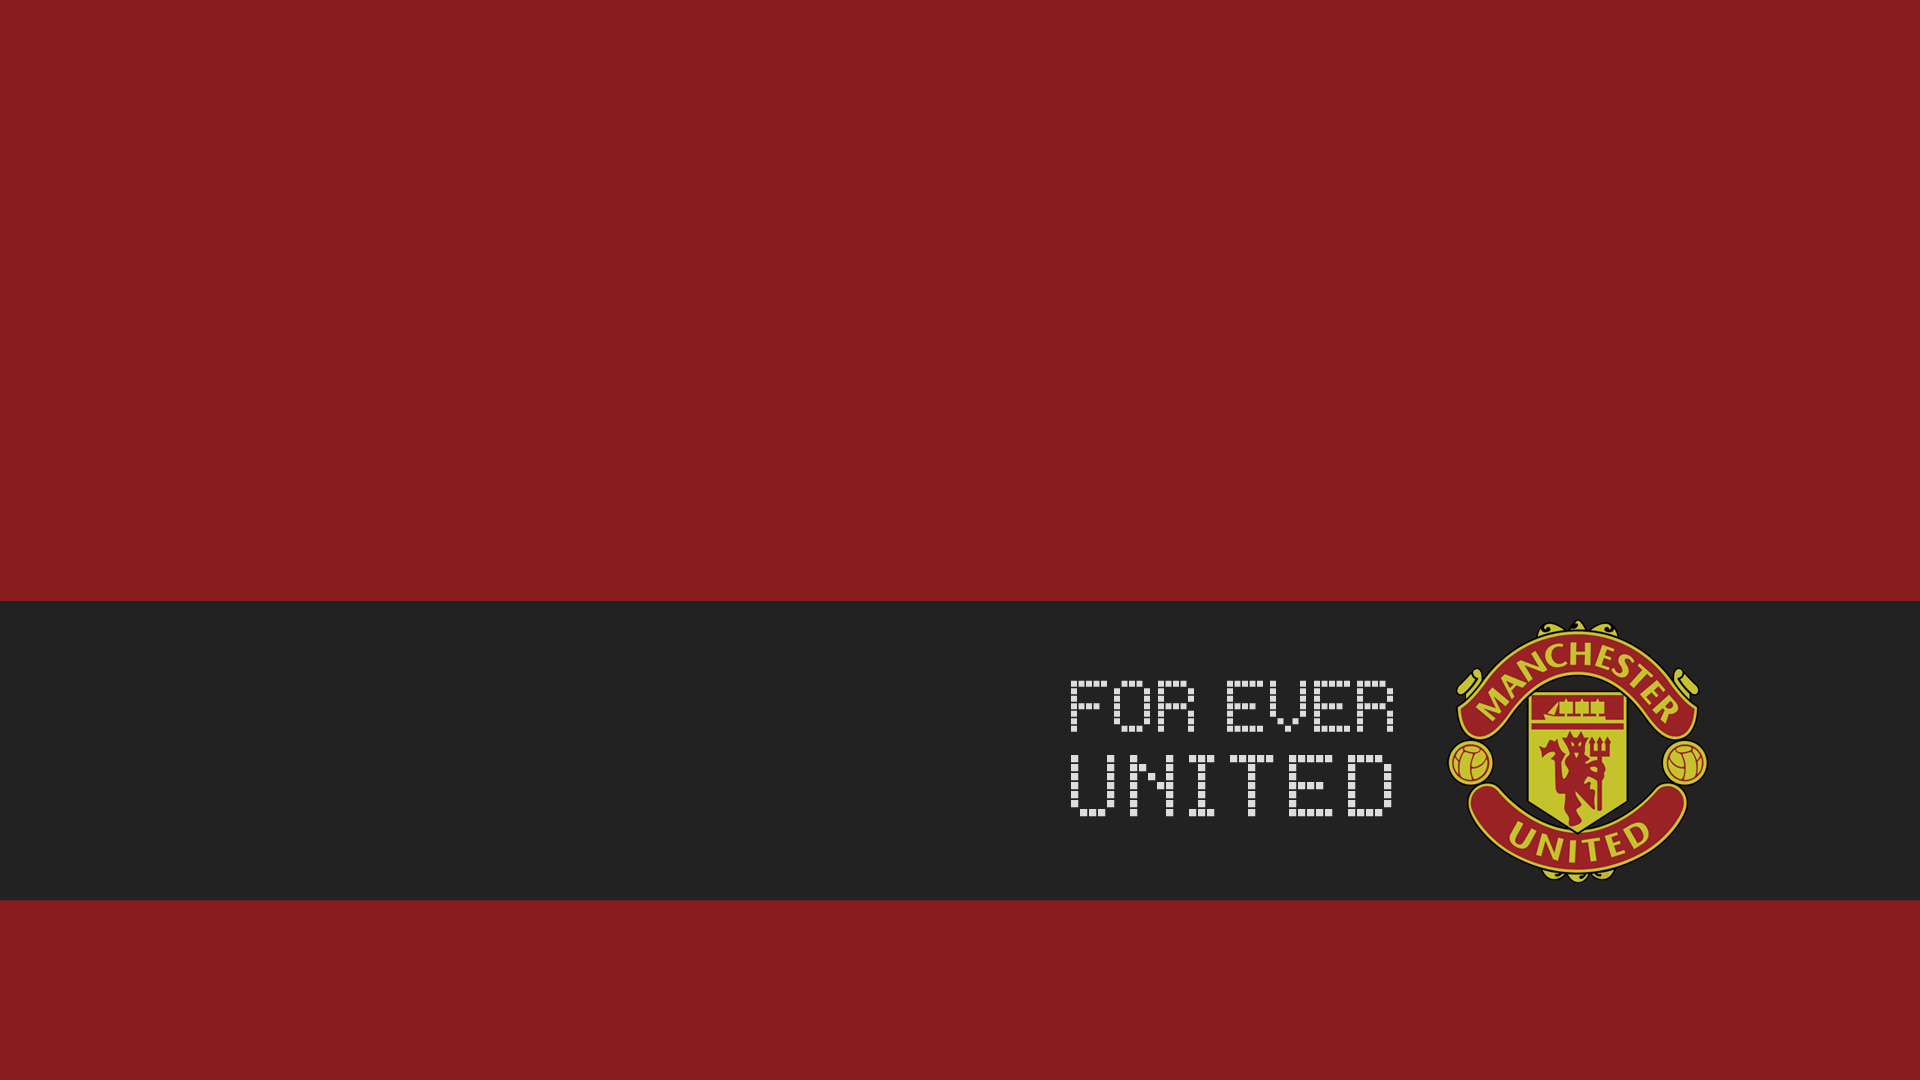 Manchester United Wallpaper Photo Epic Wallpaperz 1920x1080